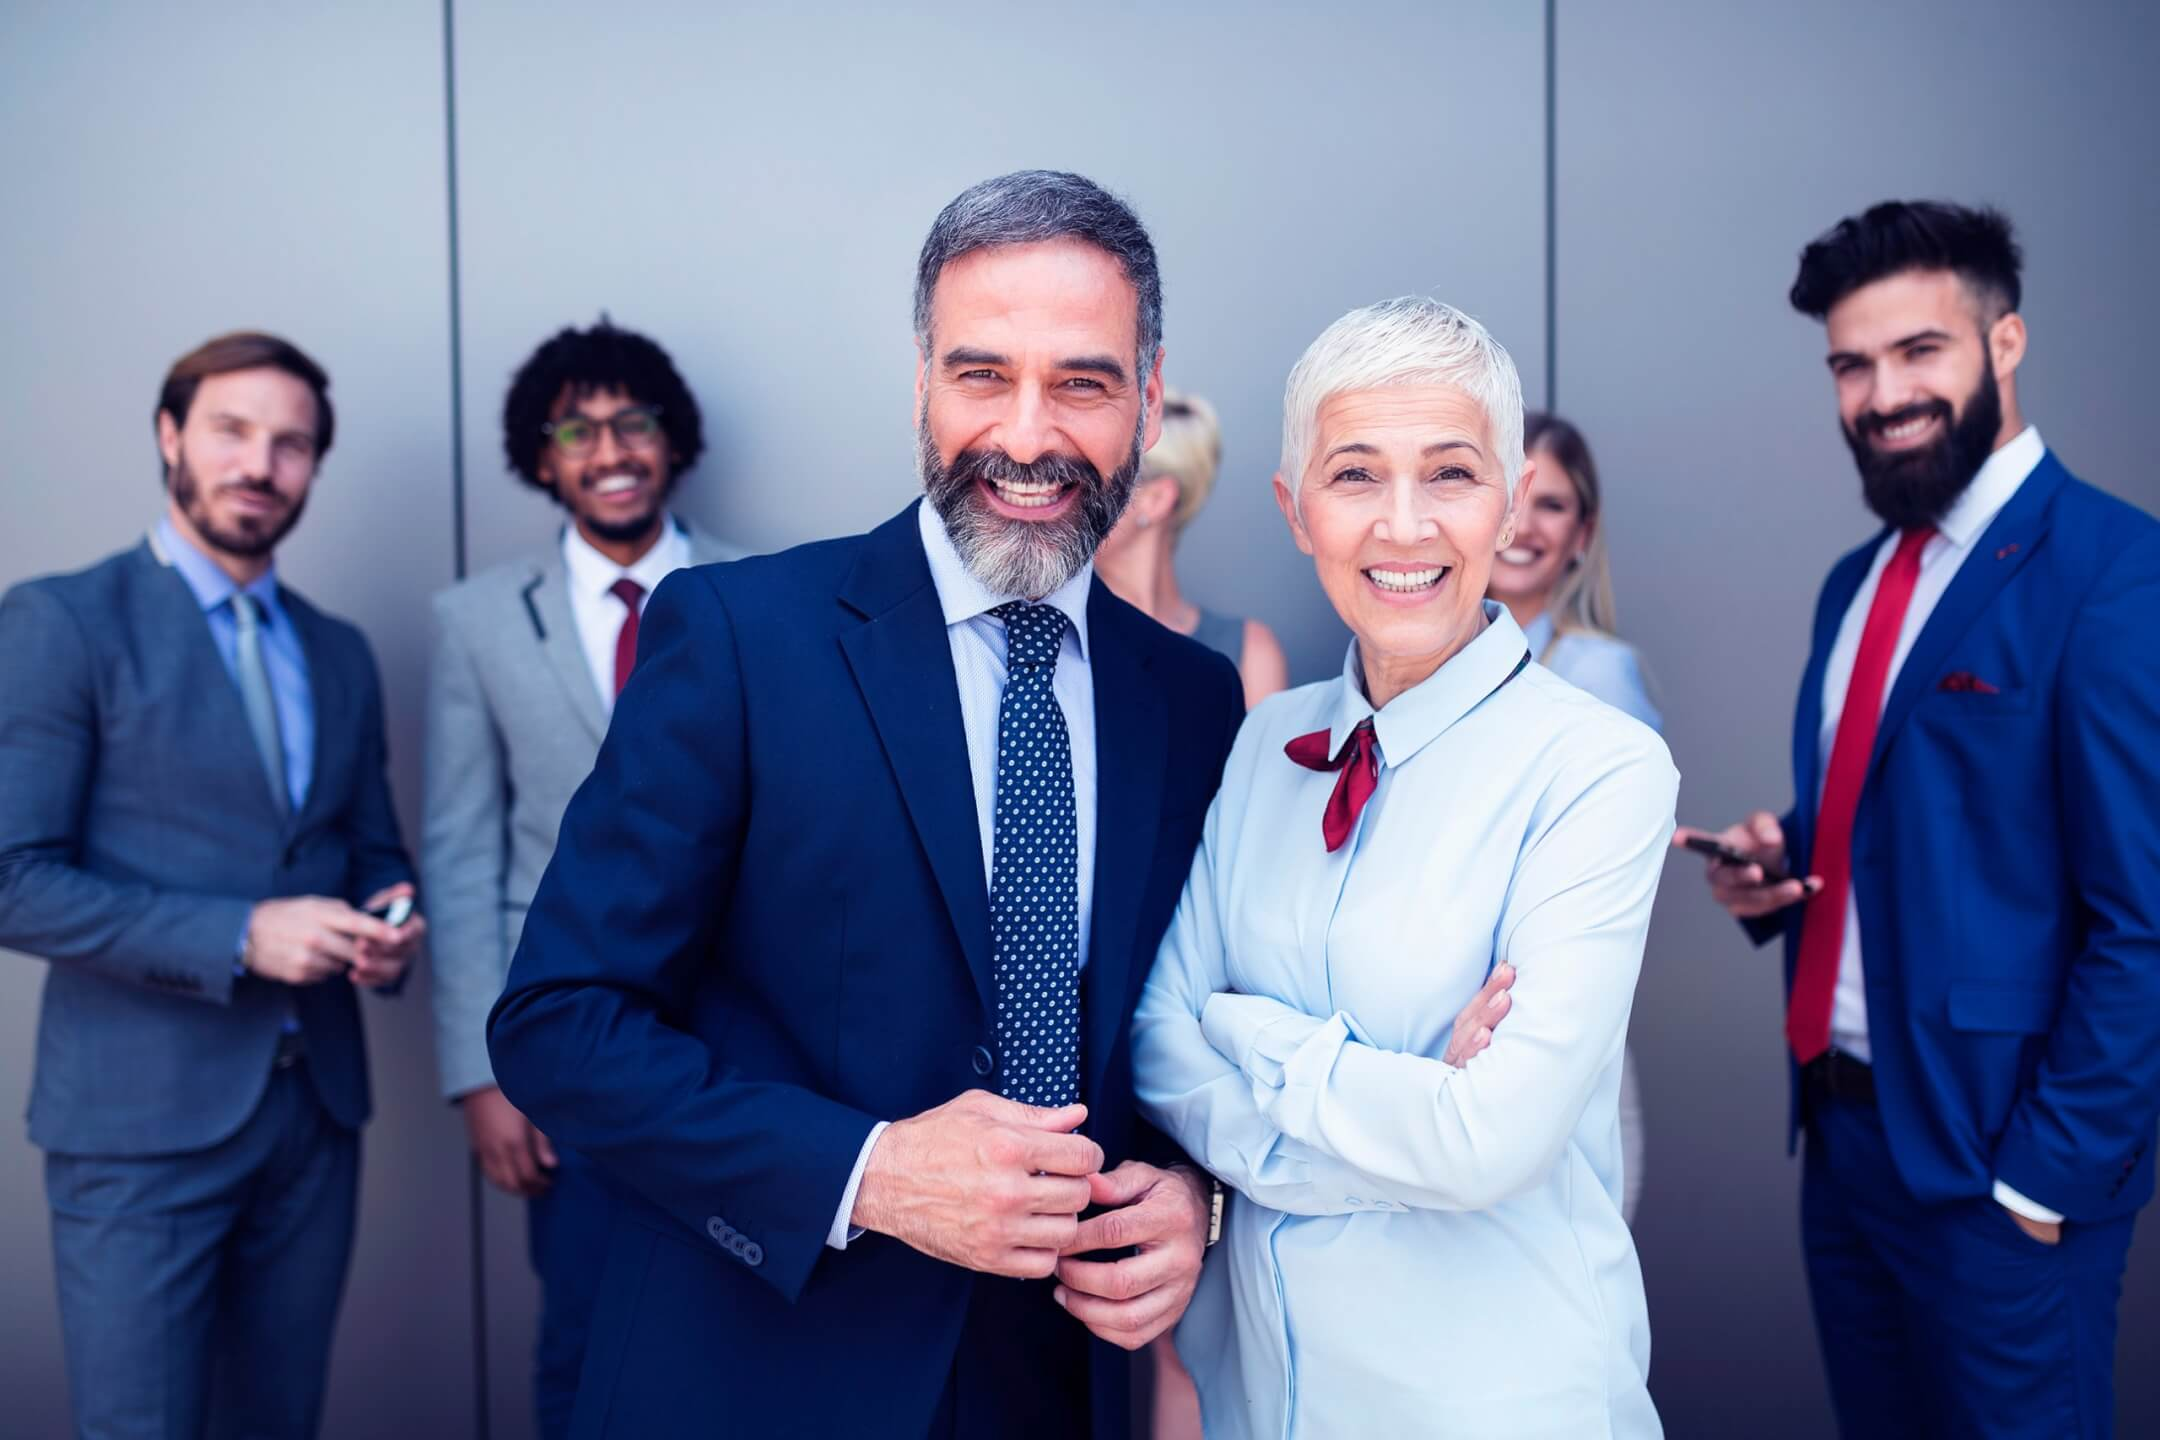 portrait-of-businesspeople-standing-with-arms-7LWEQFP-scaled.jpg